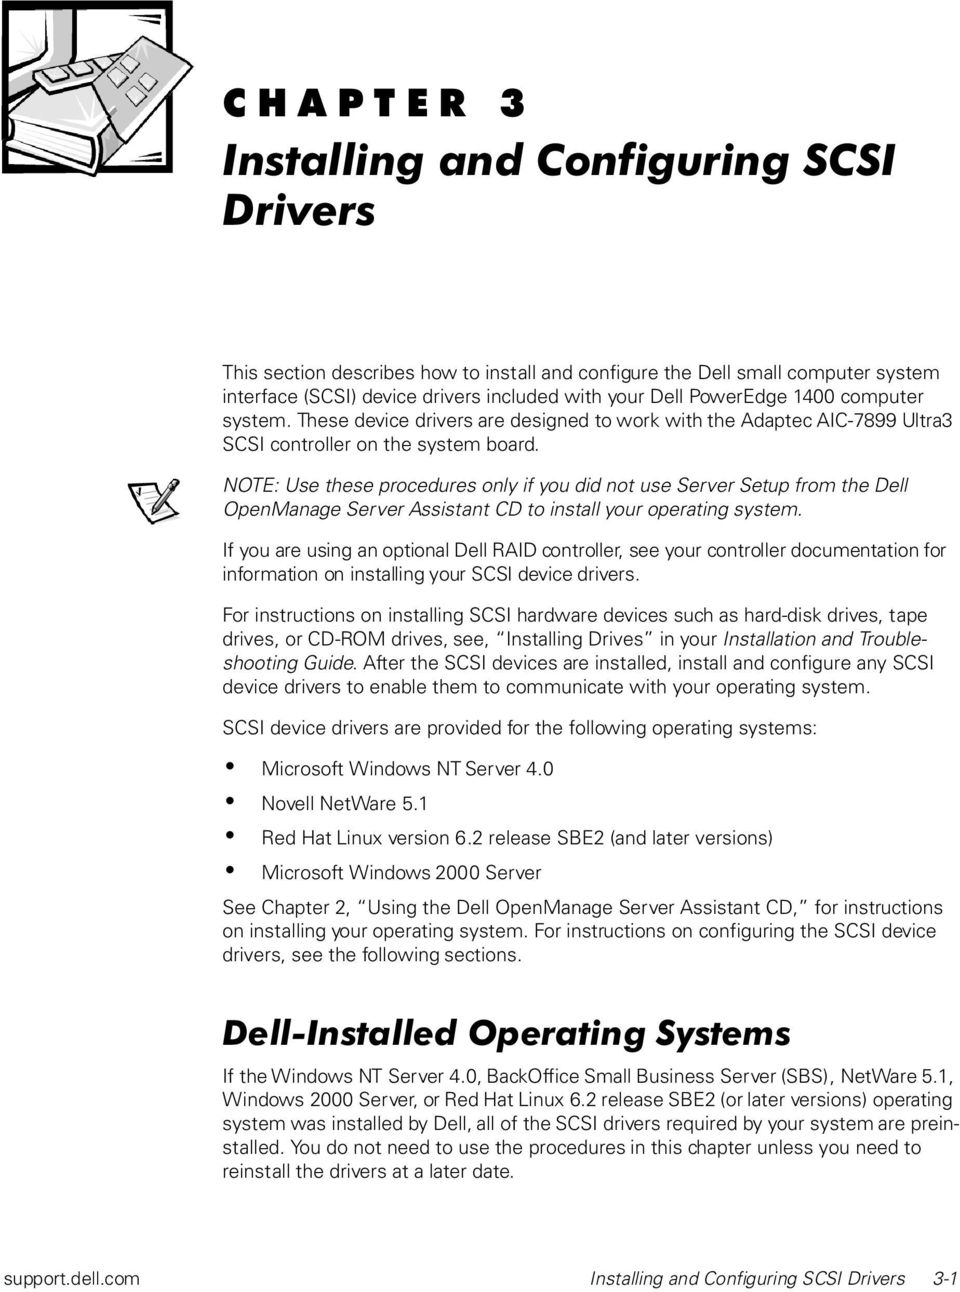 NOTE: Use these procedures only if you did not use Server Setup from the Dell OpenManage Server Assistant CD to install your operating system.